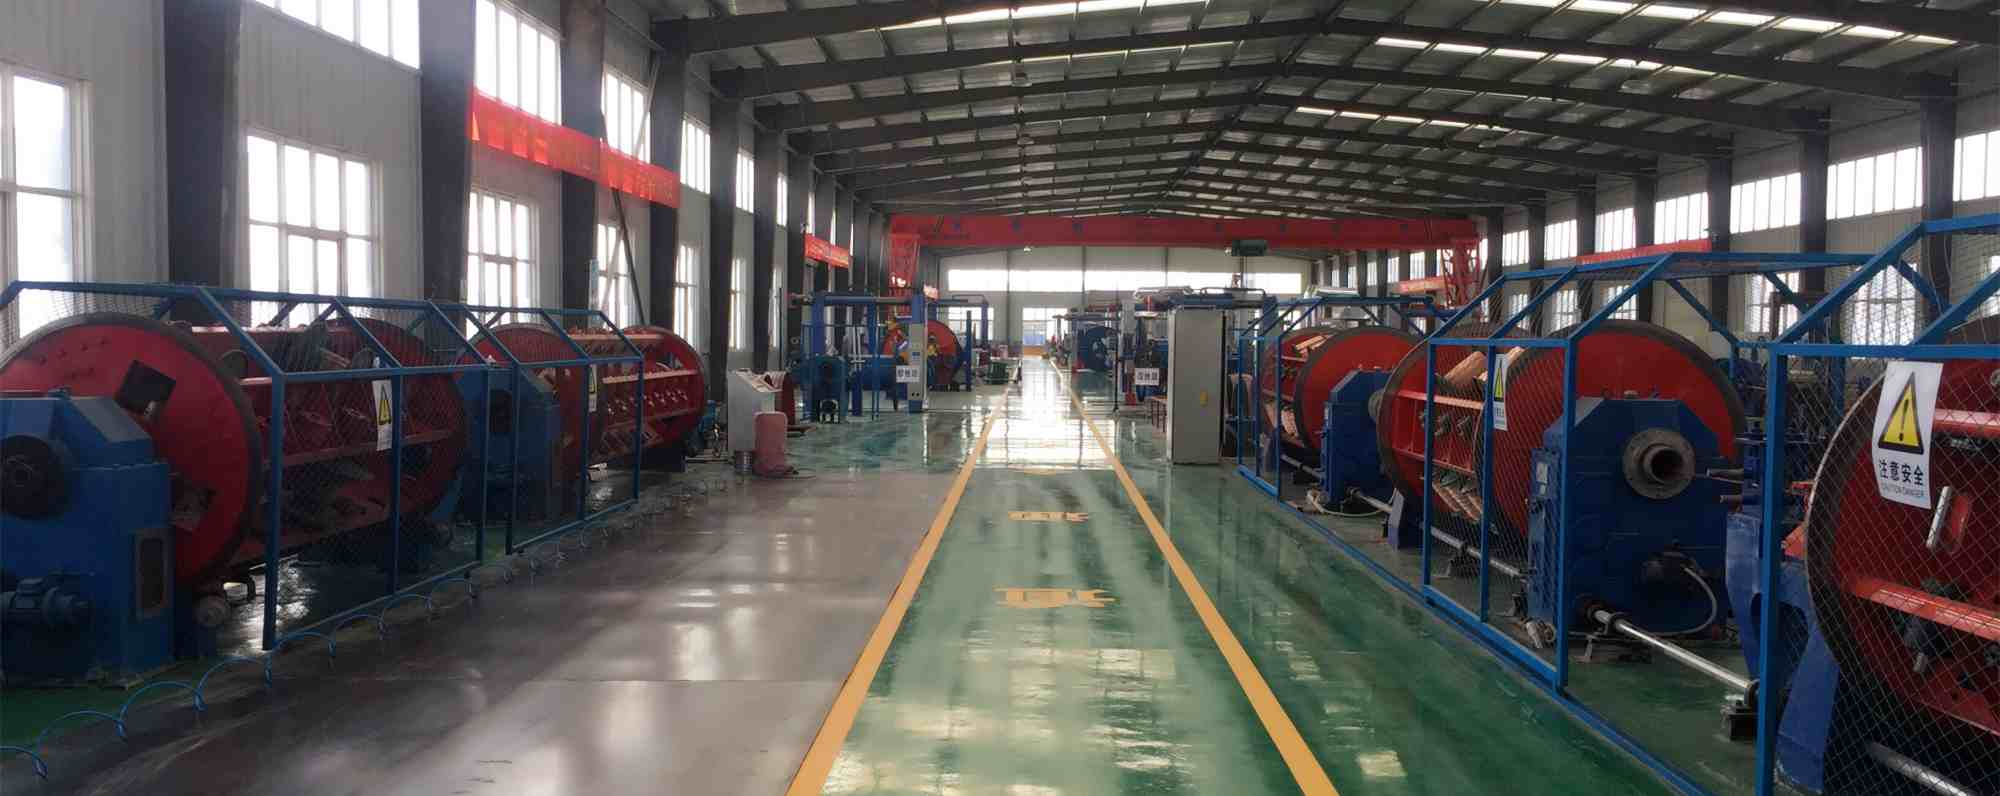 4mm2 twin and earth producing factory - huadong